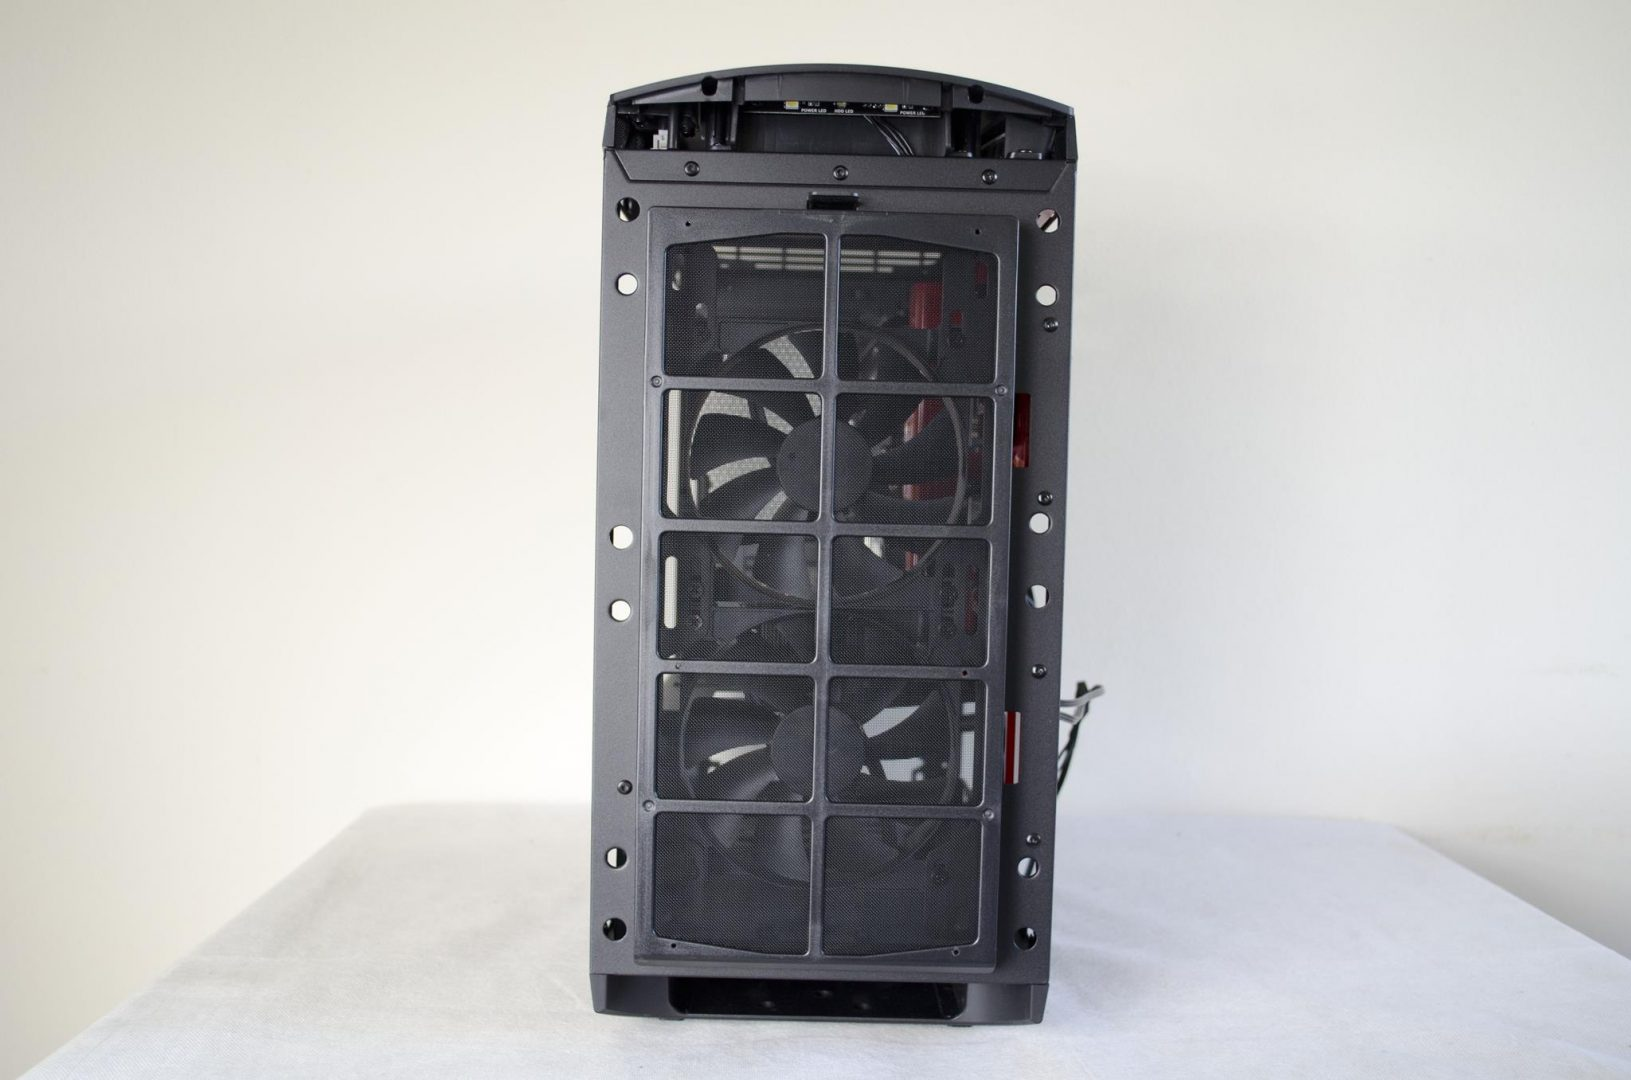 nzxt manta pc case review_17